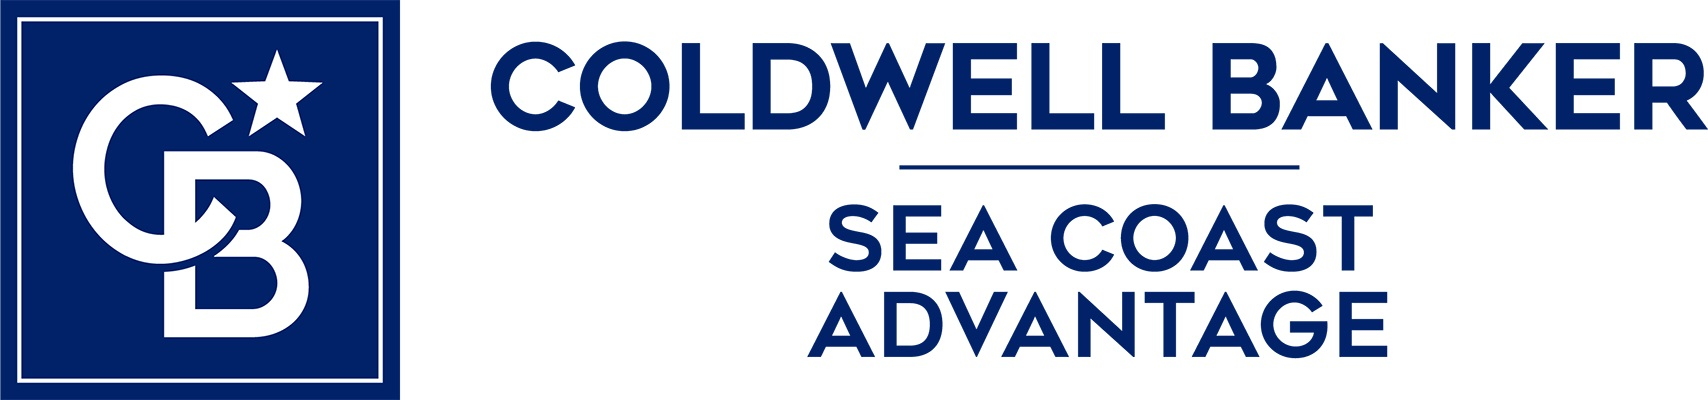 John English - Coldwell Banker Sea Coast Advantage Realty